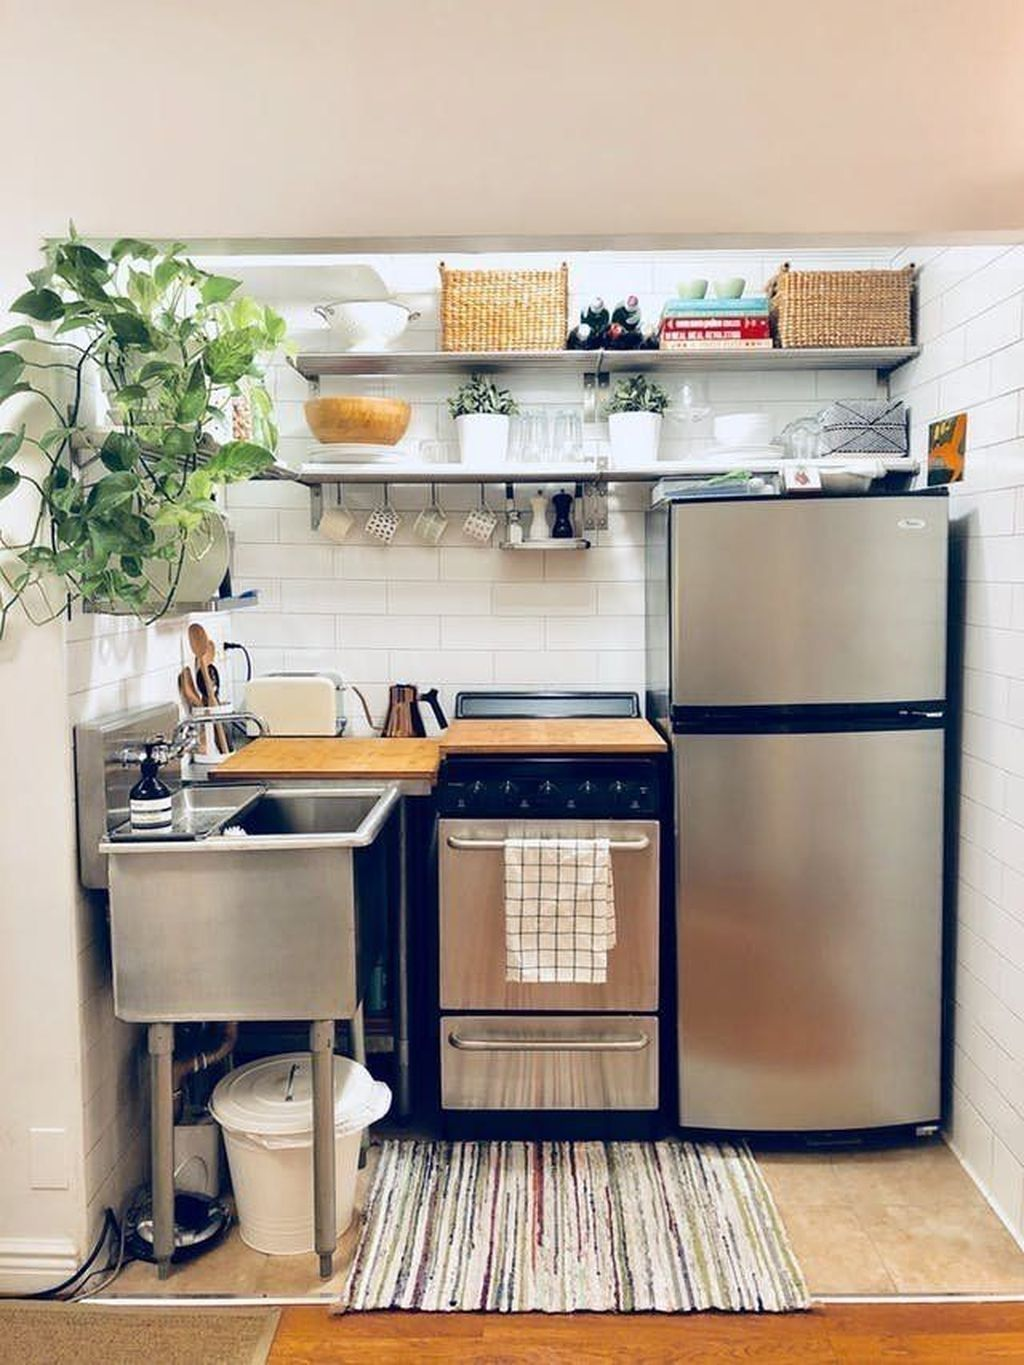 20 Charming Small Apartment Ideas For Space Saving Tiny House Kitchen Small Apartment Kitchen Kitchen Design Small